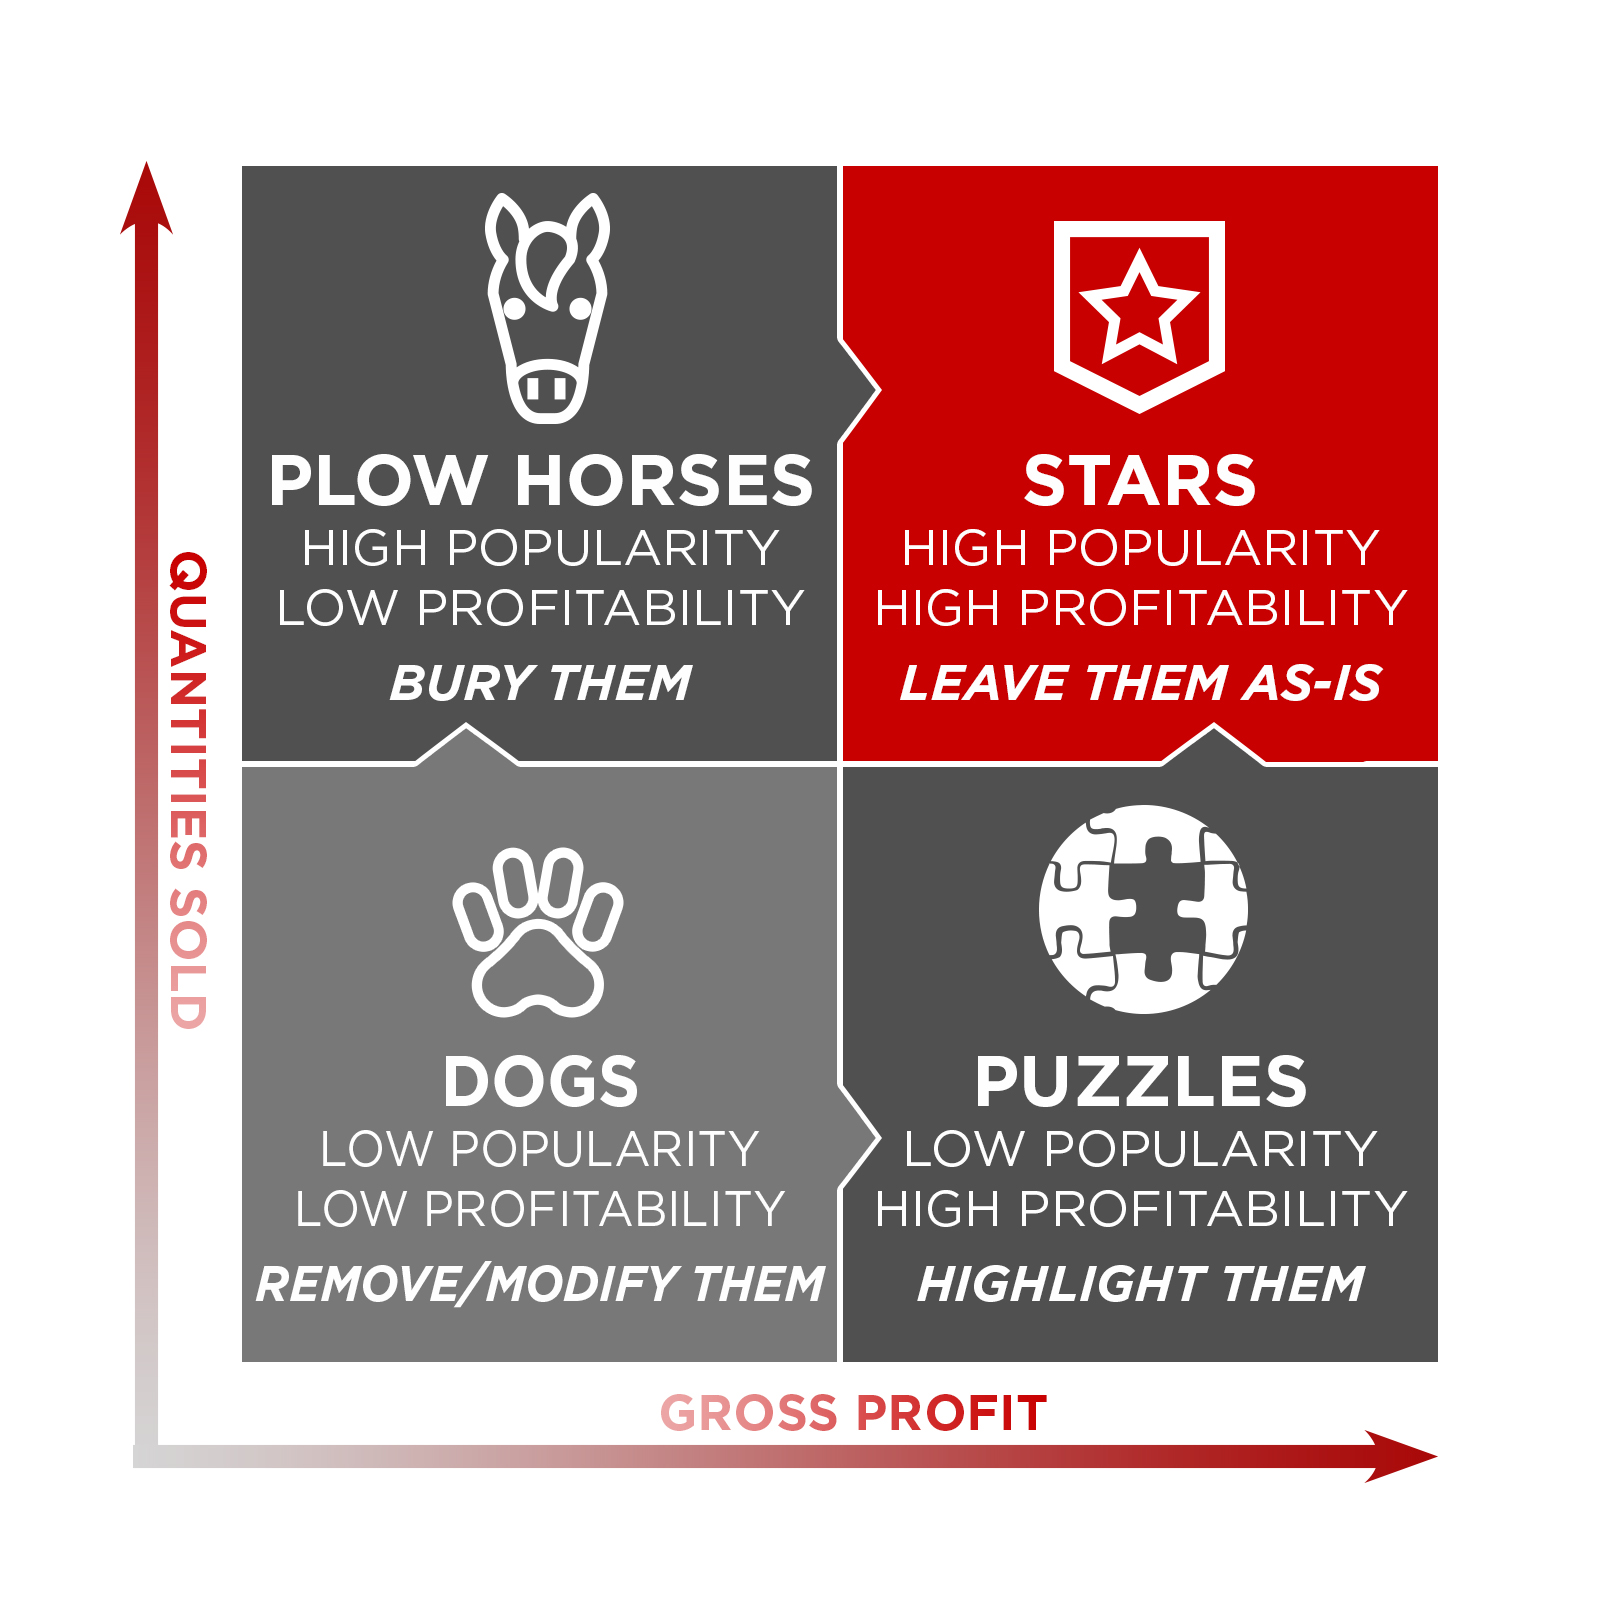 Menu item categorization chart: Plow horses, dogs, stars and puzzles